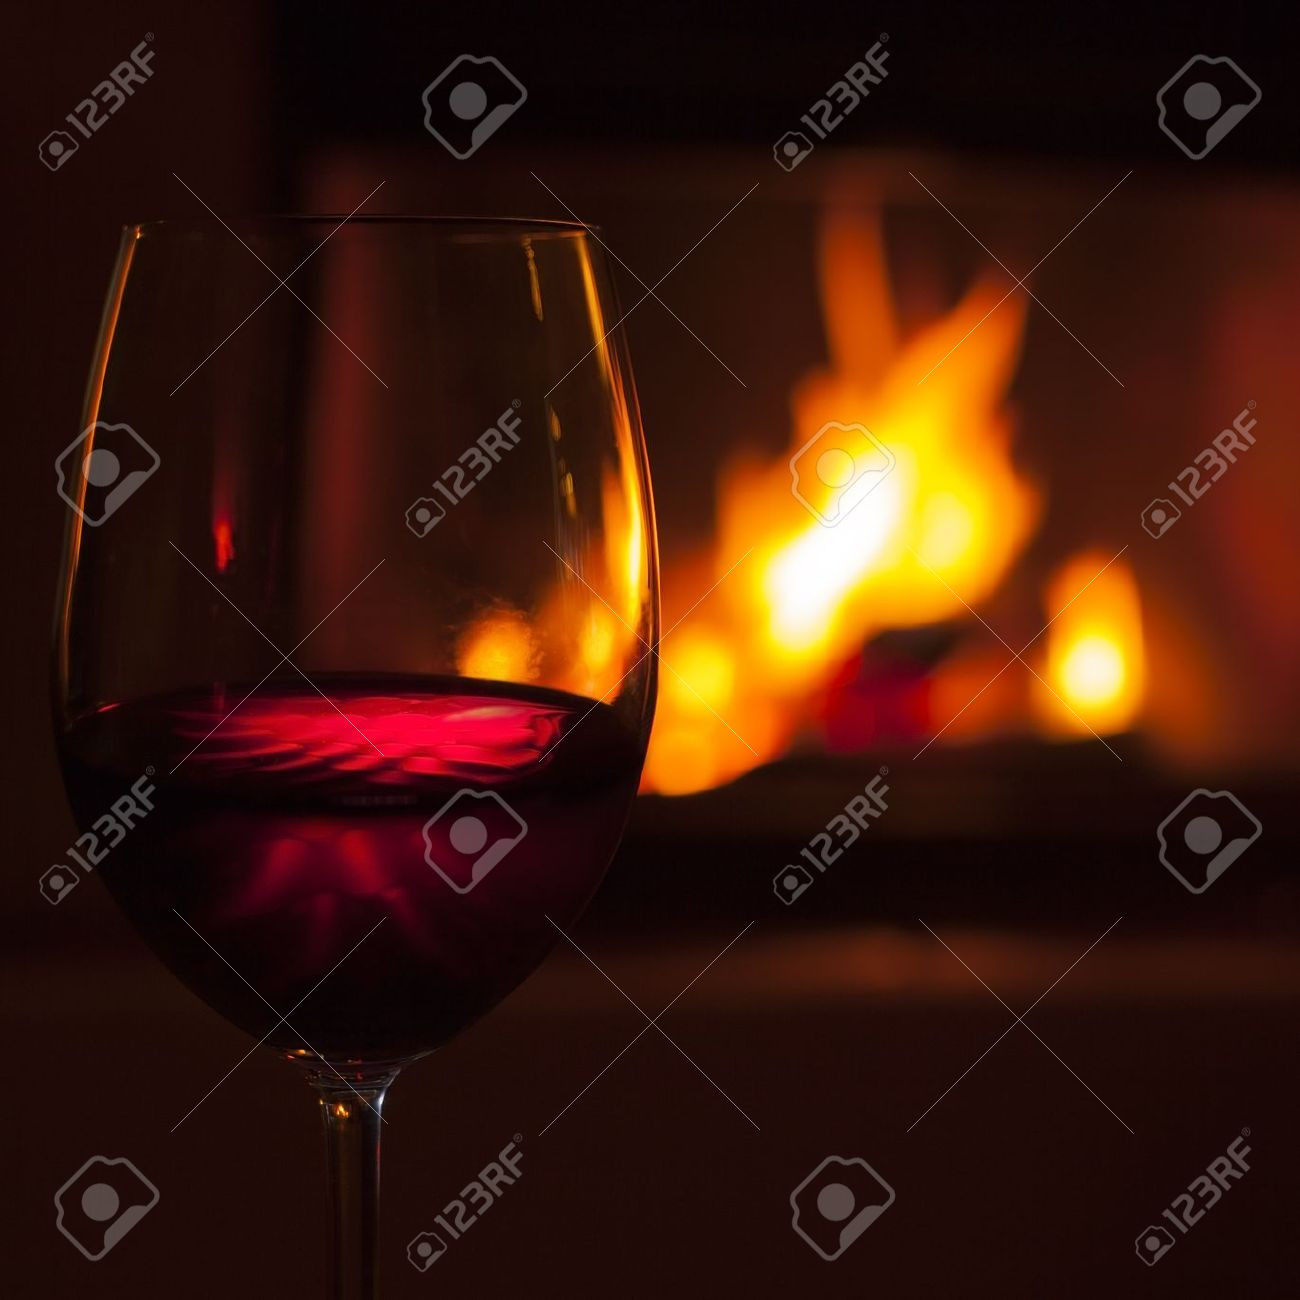 glass of red wine at cozy fireplace in winter stock photo picture